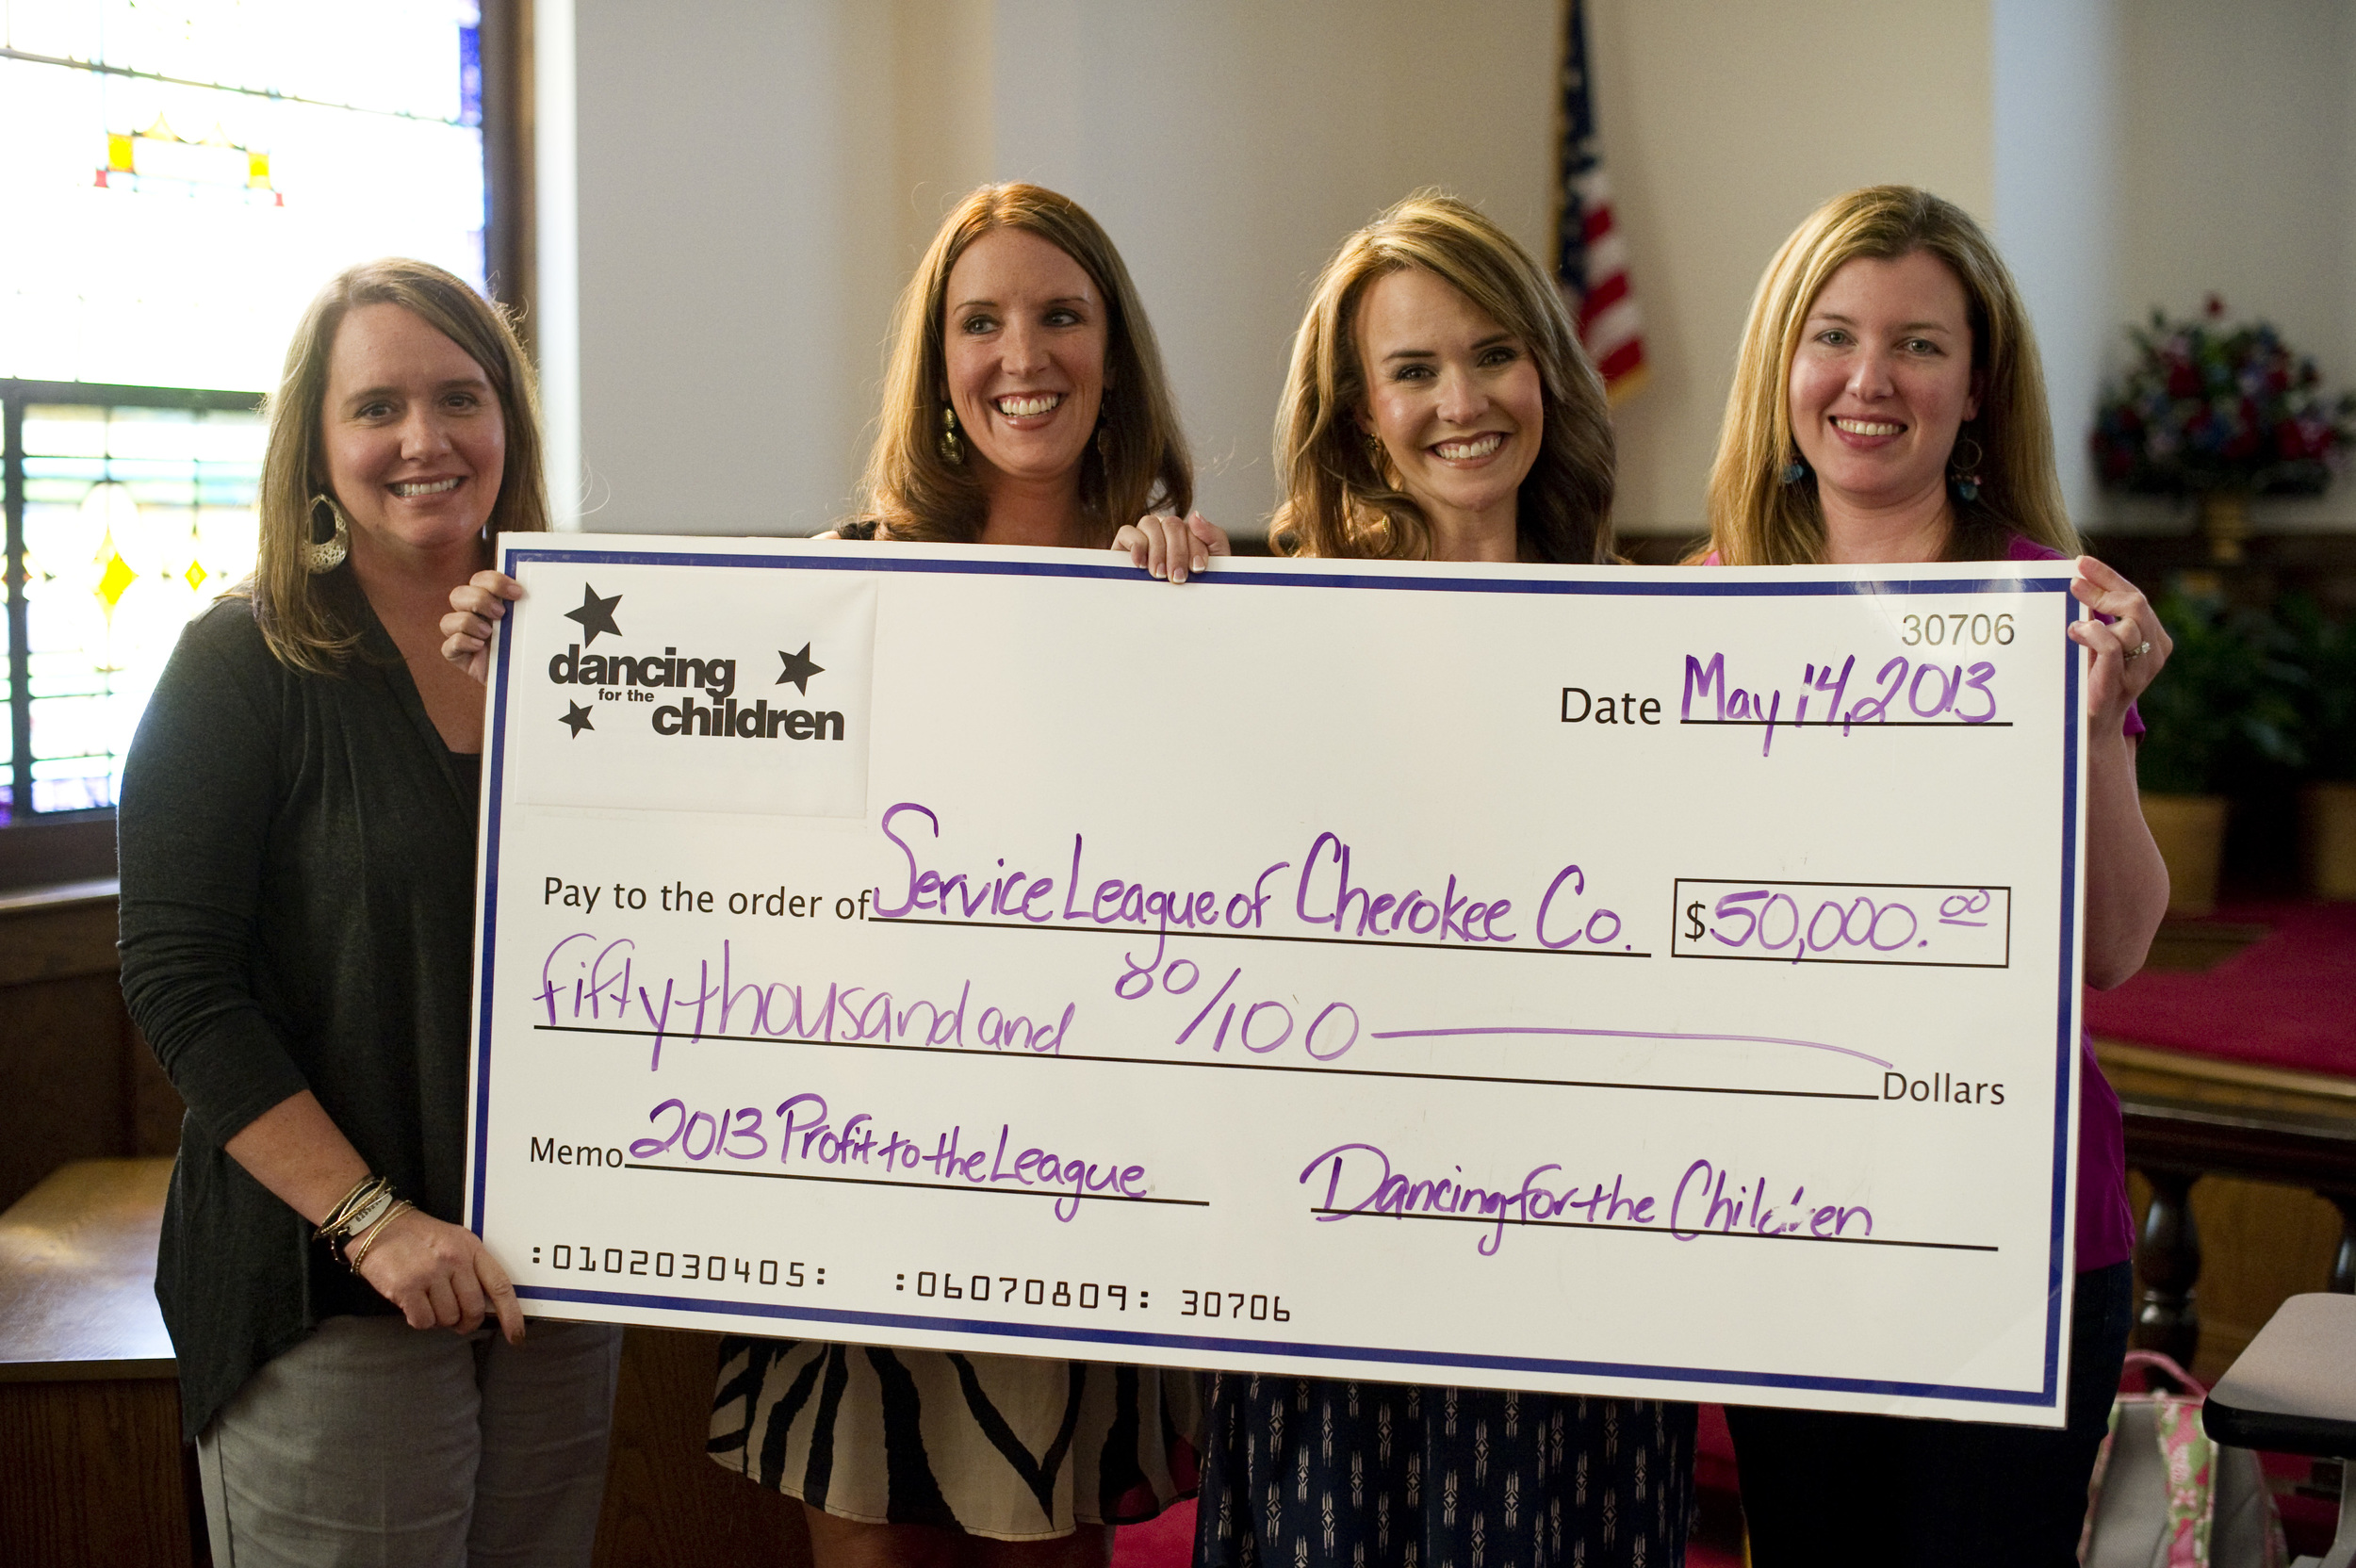 On behalf of the Annual Ball 2013 Committee, chairwomen (left to right) Holli Kimsey, Brittany Hayes, and April Turner present a check for $50,000 to Service League of Cherokee County President, Delane Stevens on Tuesday.